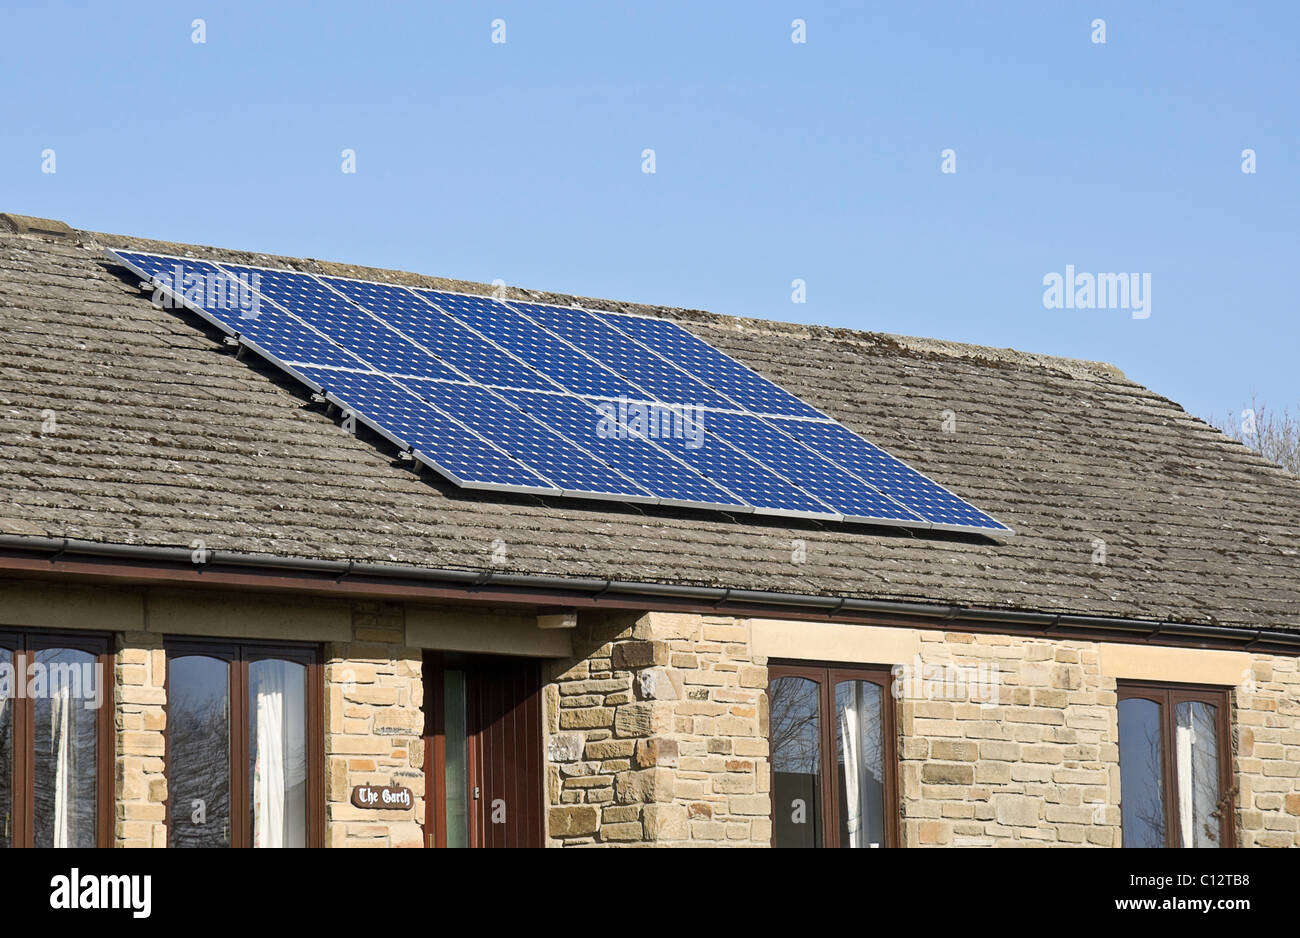 Solar panels on a modern bungalow in Yorkshire, UK - Stock Image